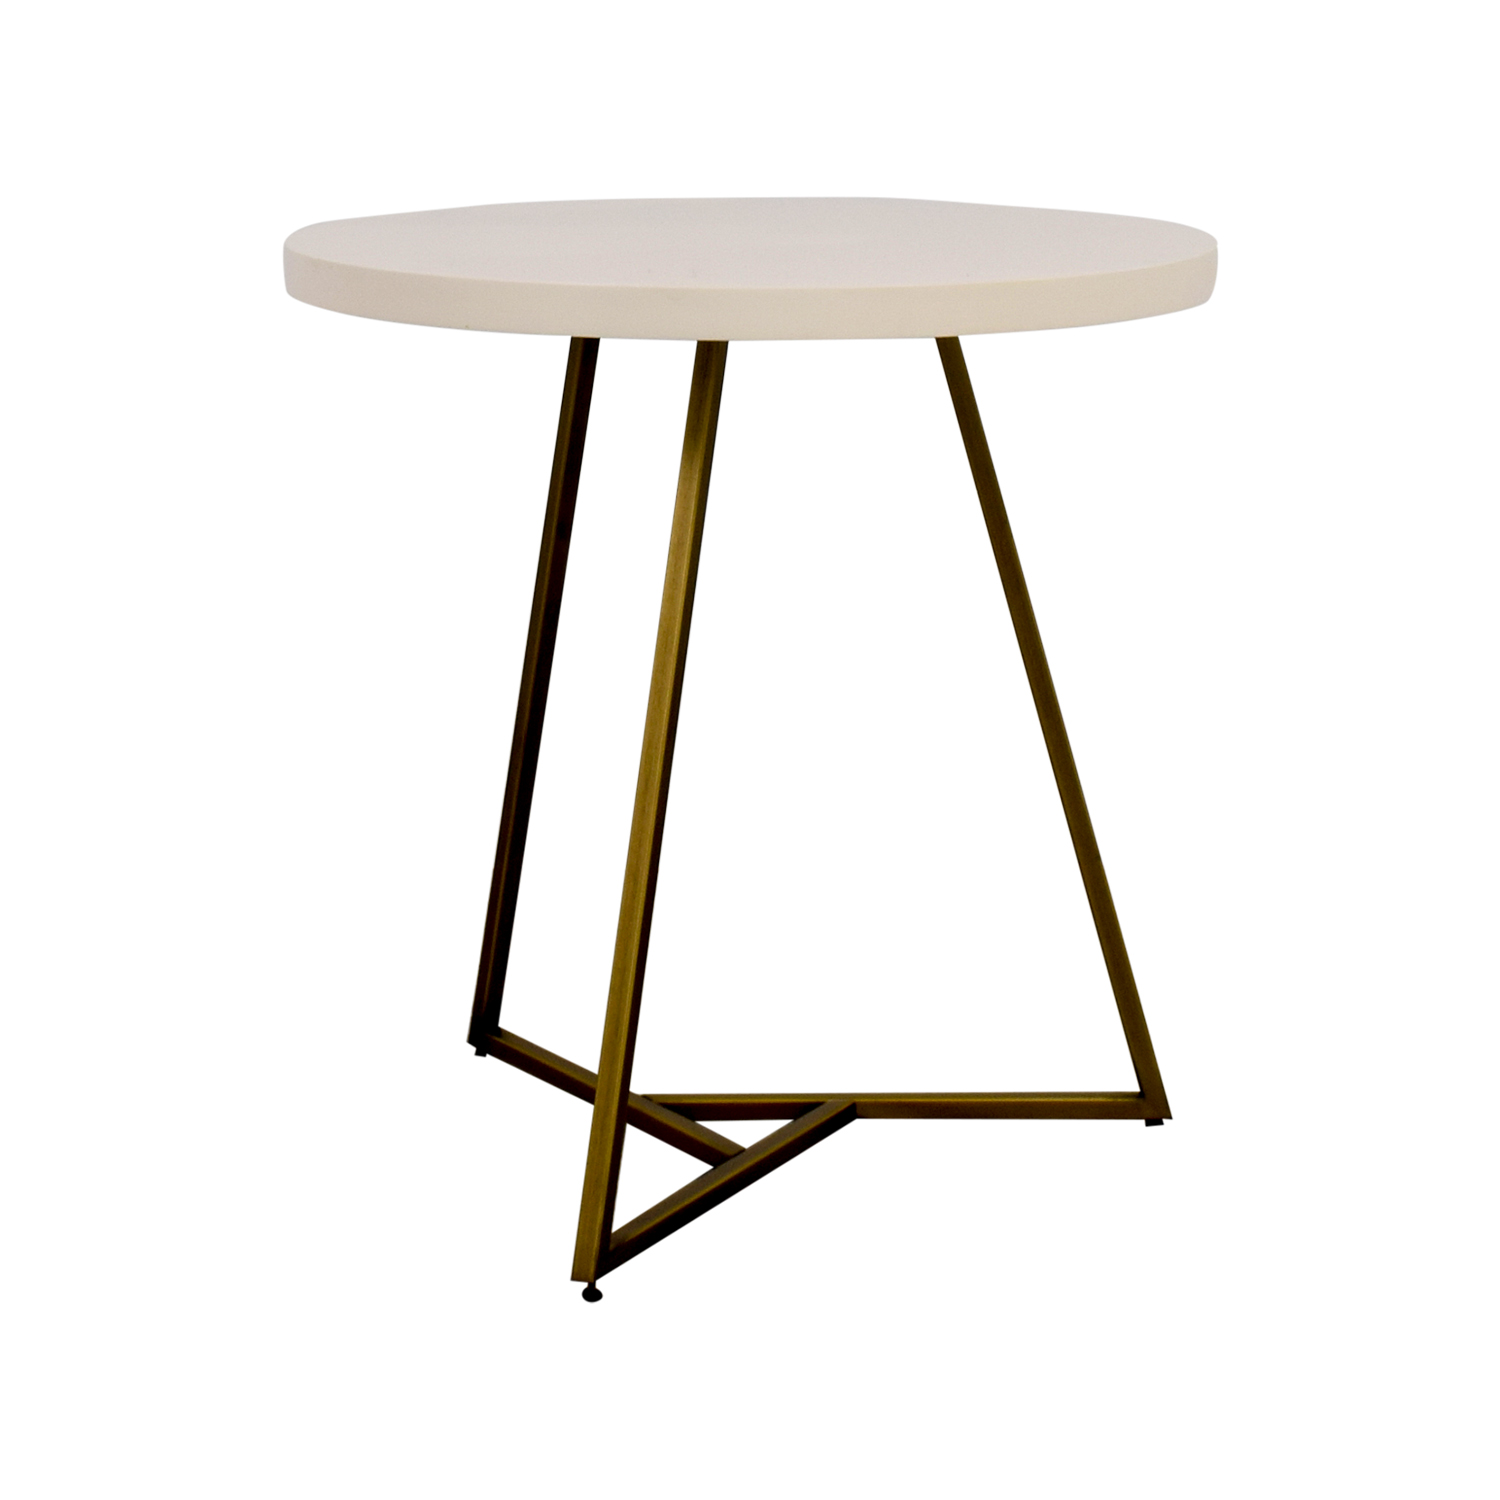 Cafe Tables 59 Off West Elm West Elm Wooden Coffee Table Tables